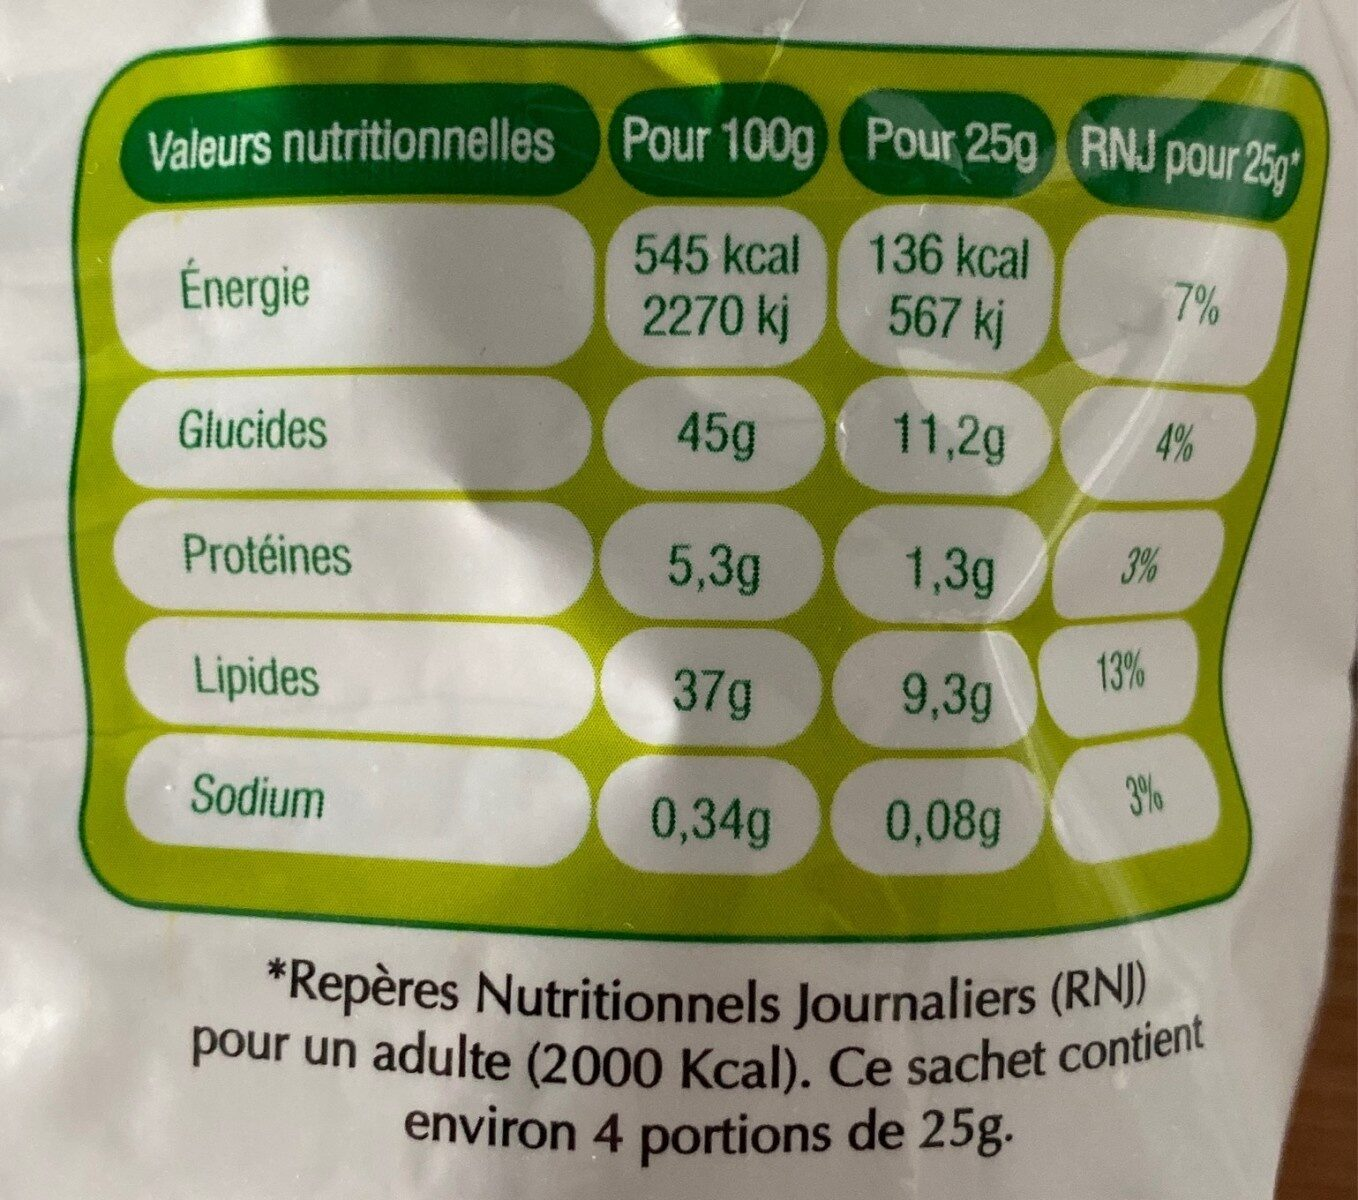 Patatas fritas - Nutrition facts - fr